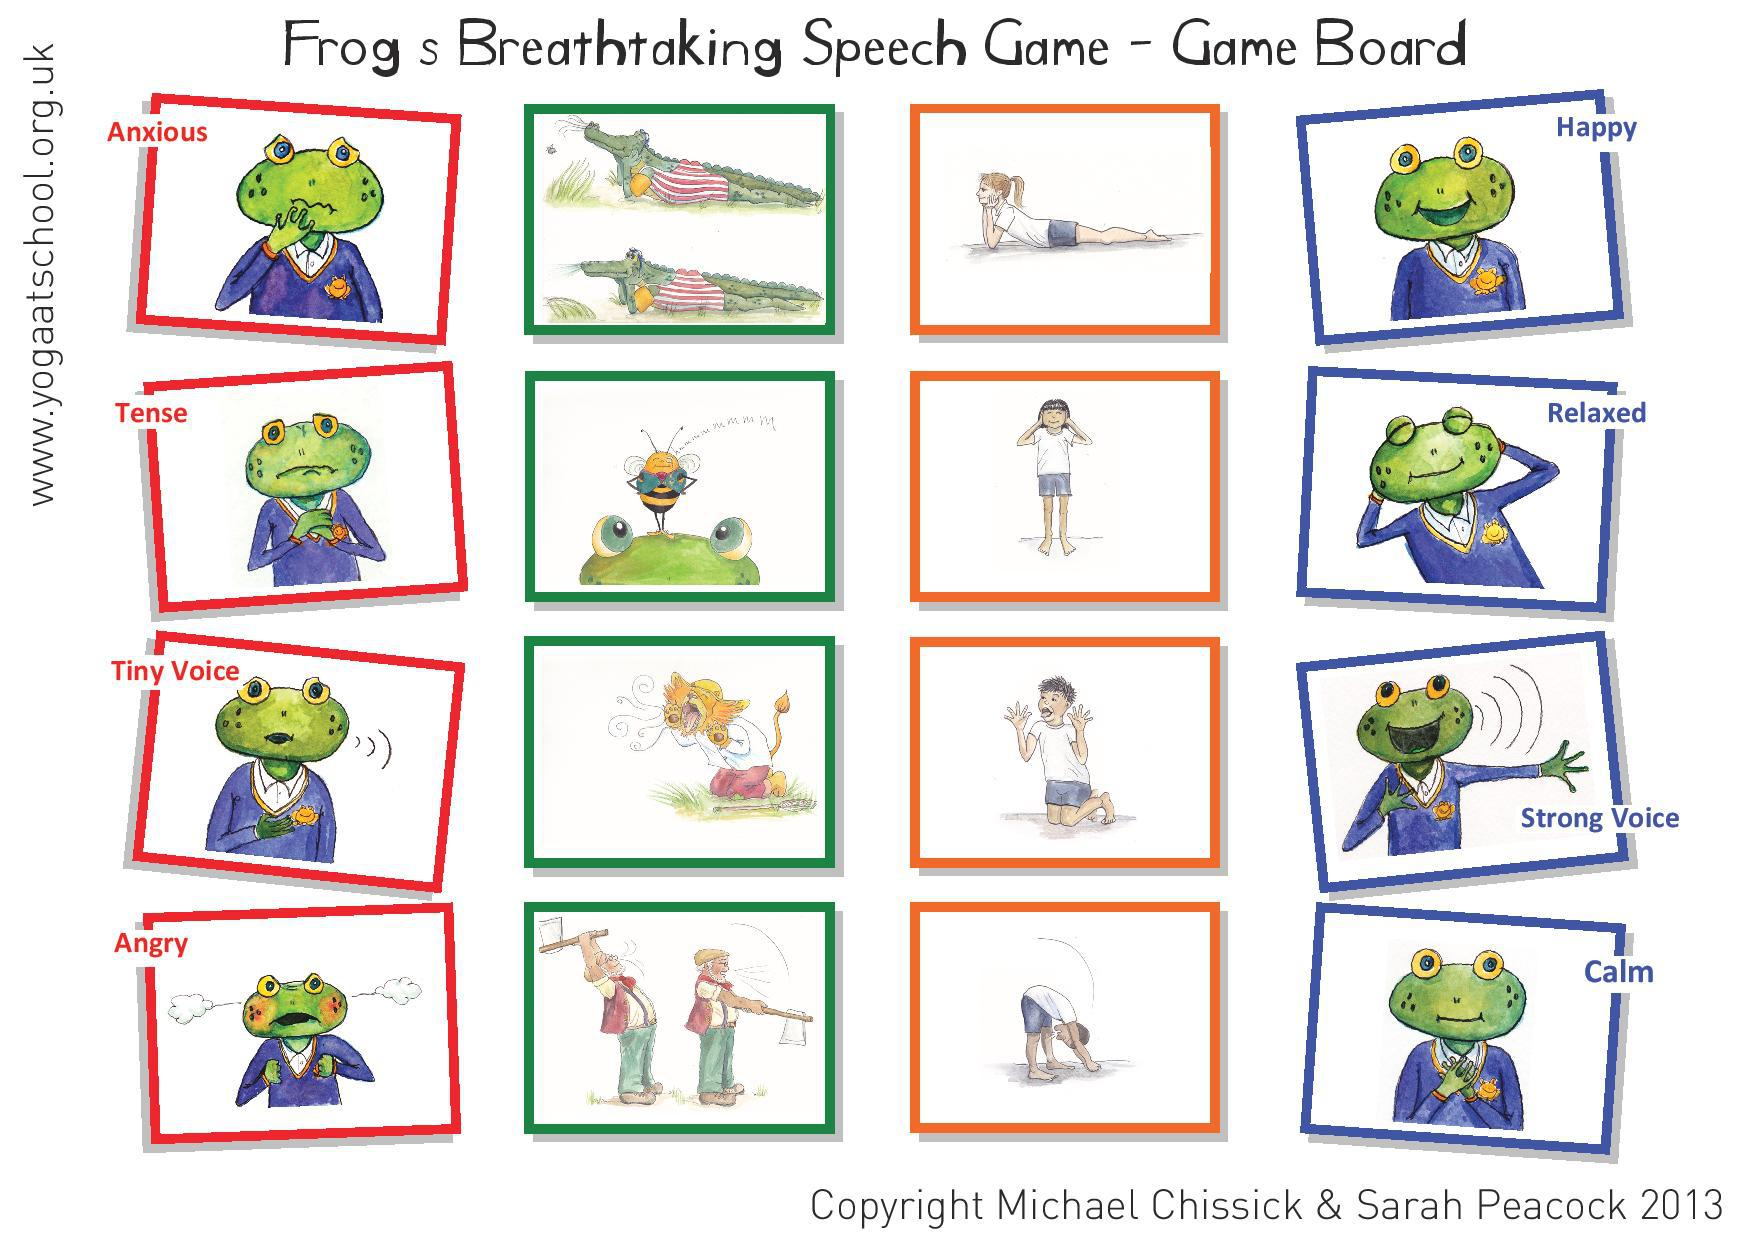 Frog's Breathtaking Speech Board Game